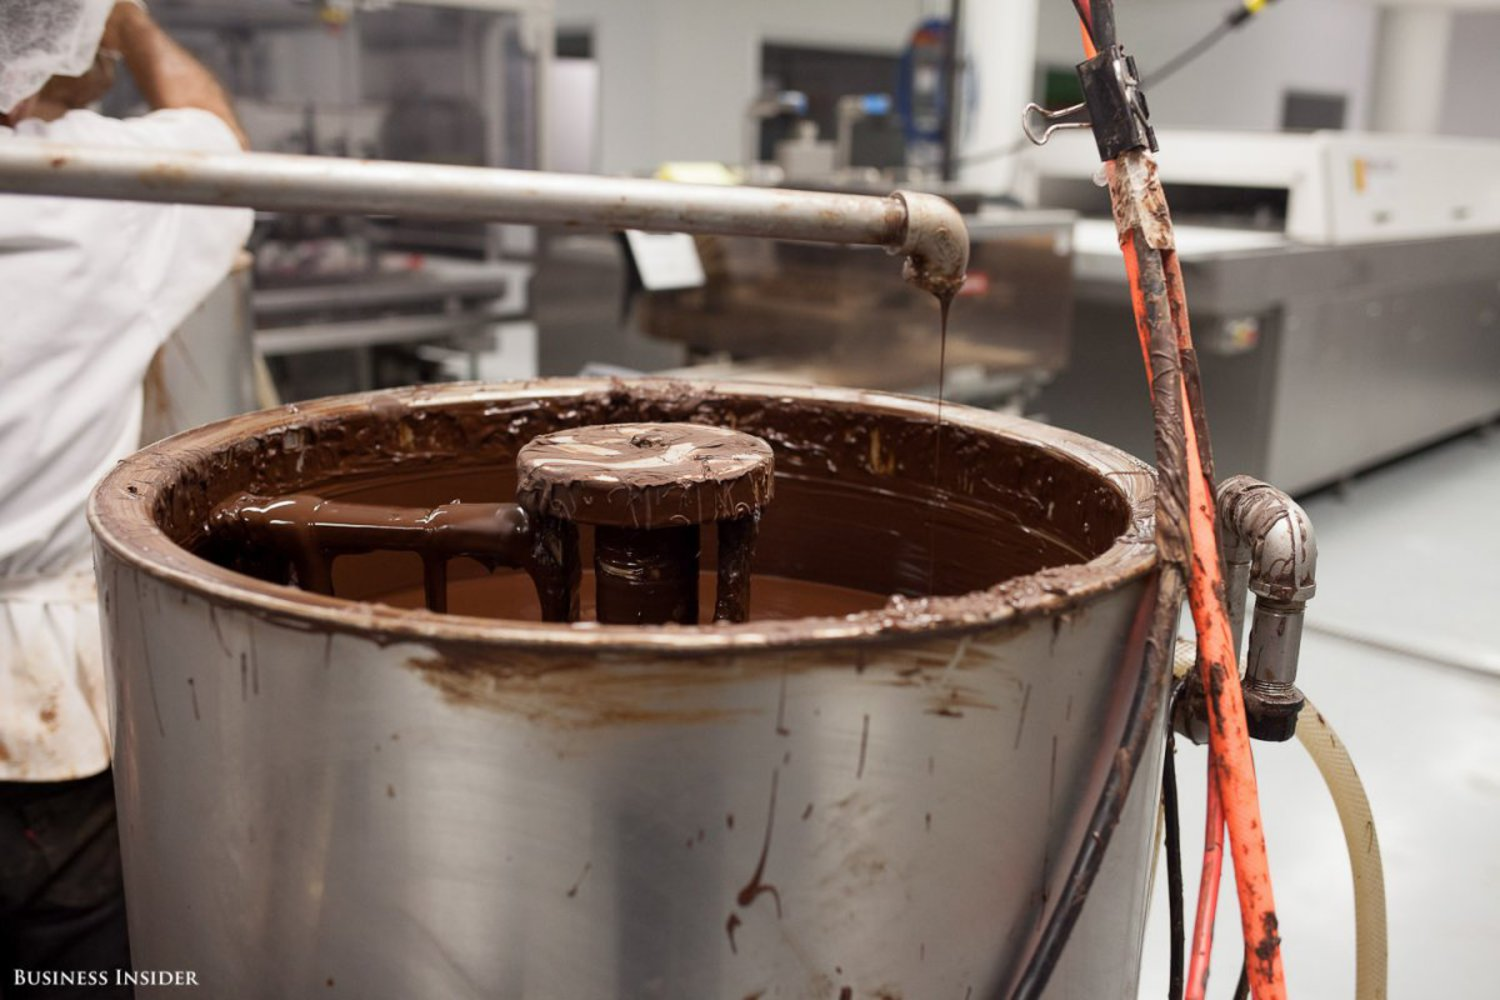 """We love this space. It's changed our life,"" Torres told Business Insider. ""It's a nice way to work. This building has a soul."" Here's the chocolate mixer in action."